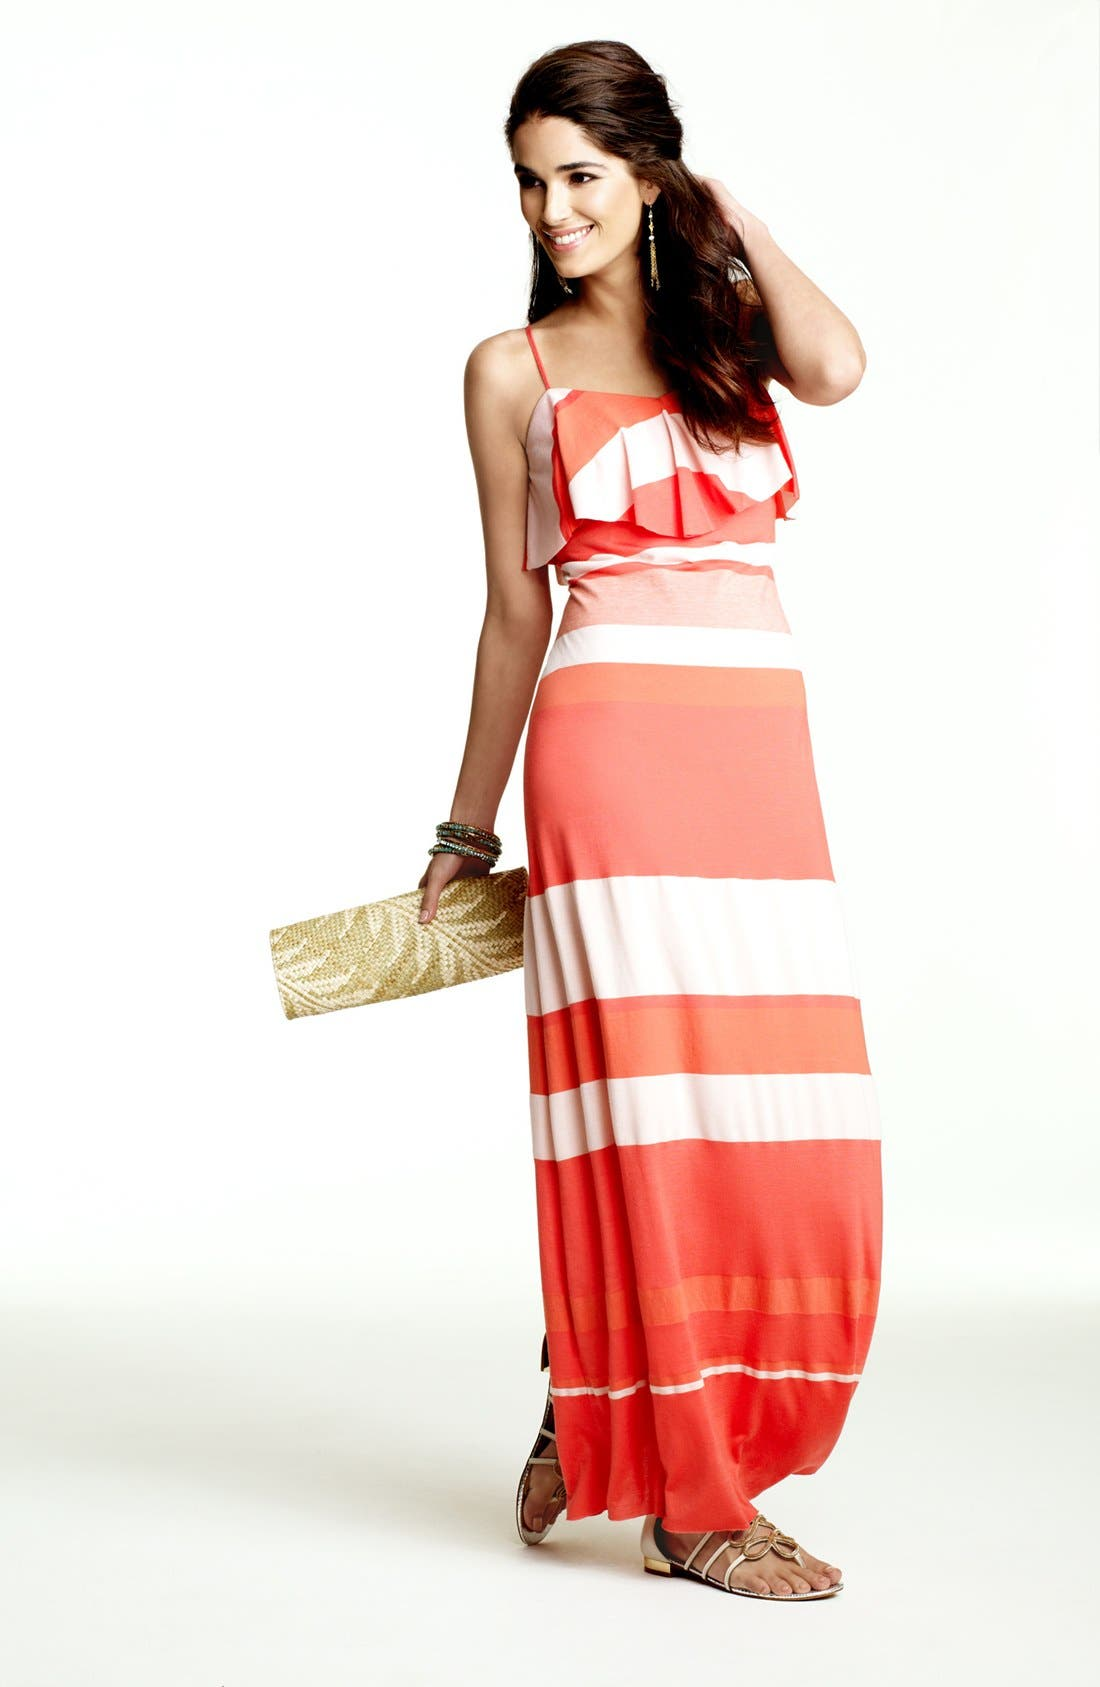 Alternate Image 1 Selected - Cynthia Steffe Maxi Dress & Accessories